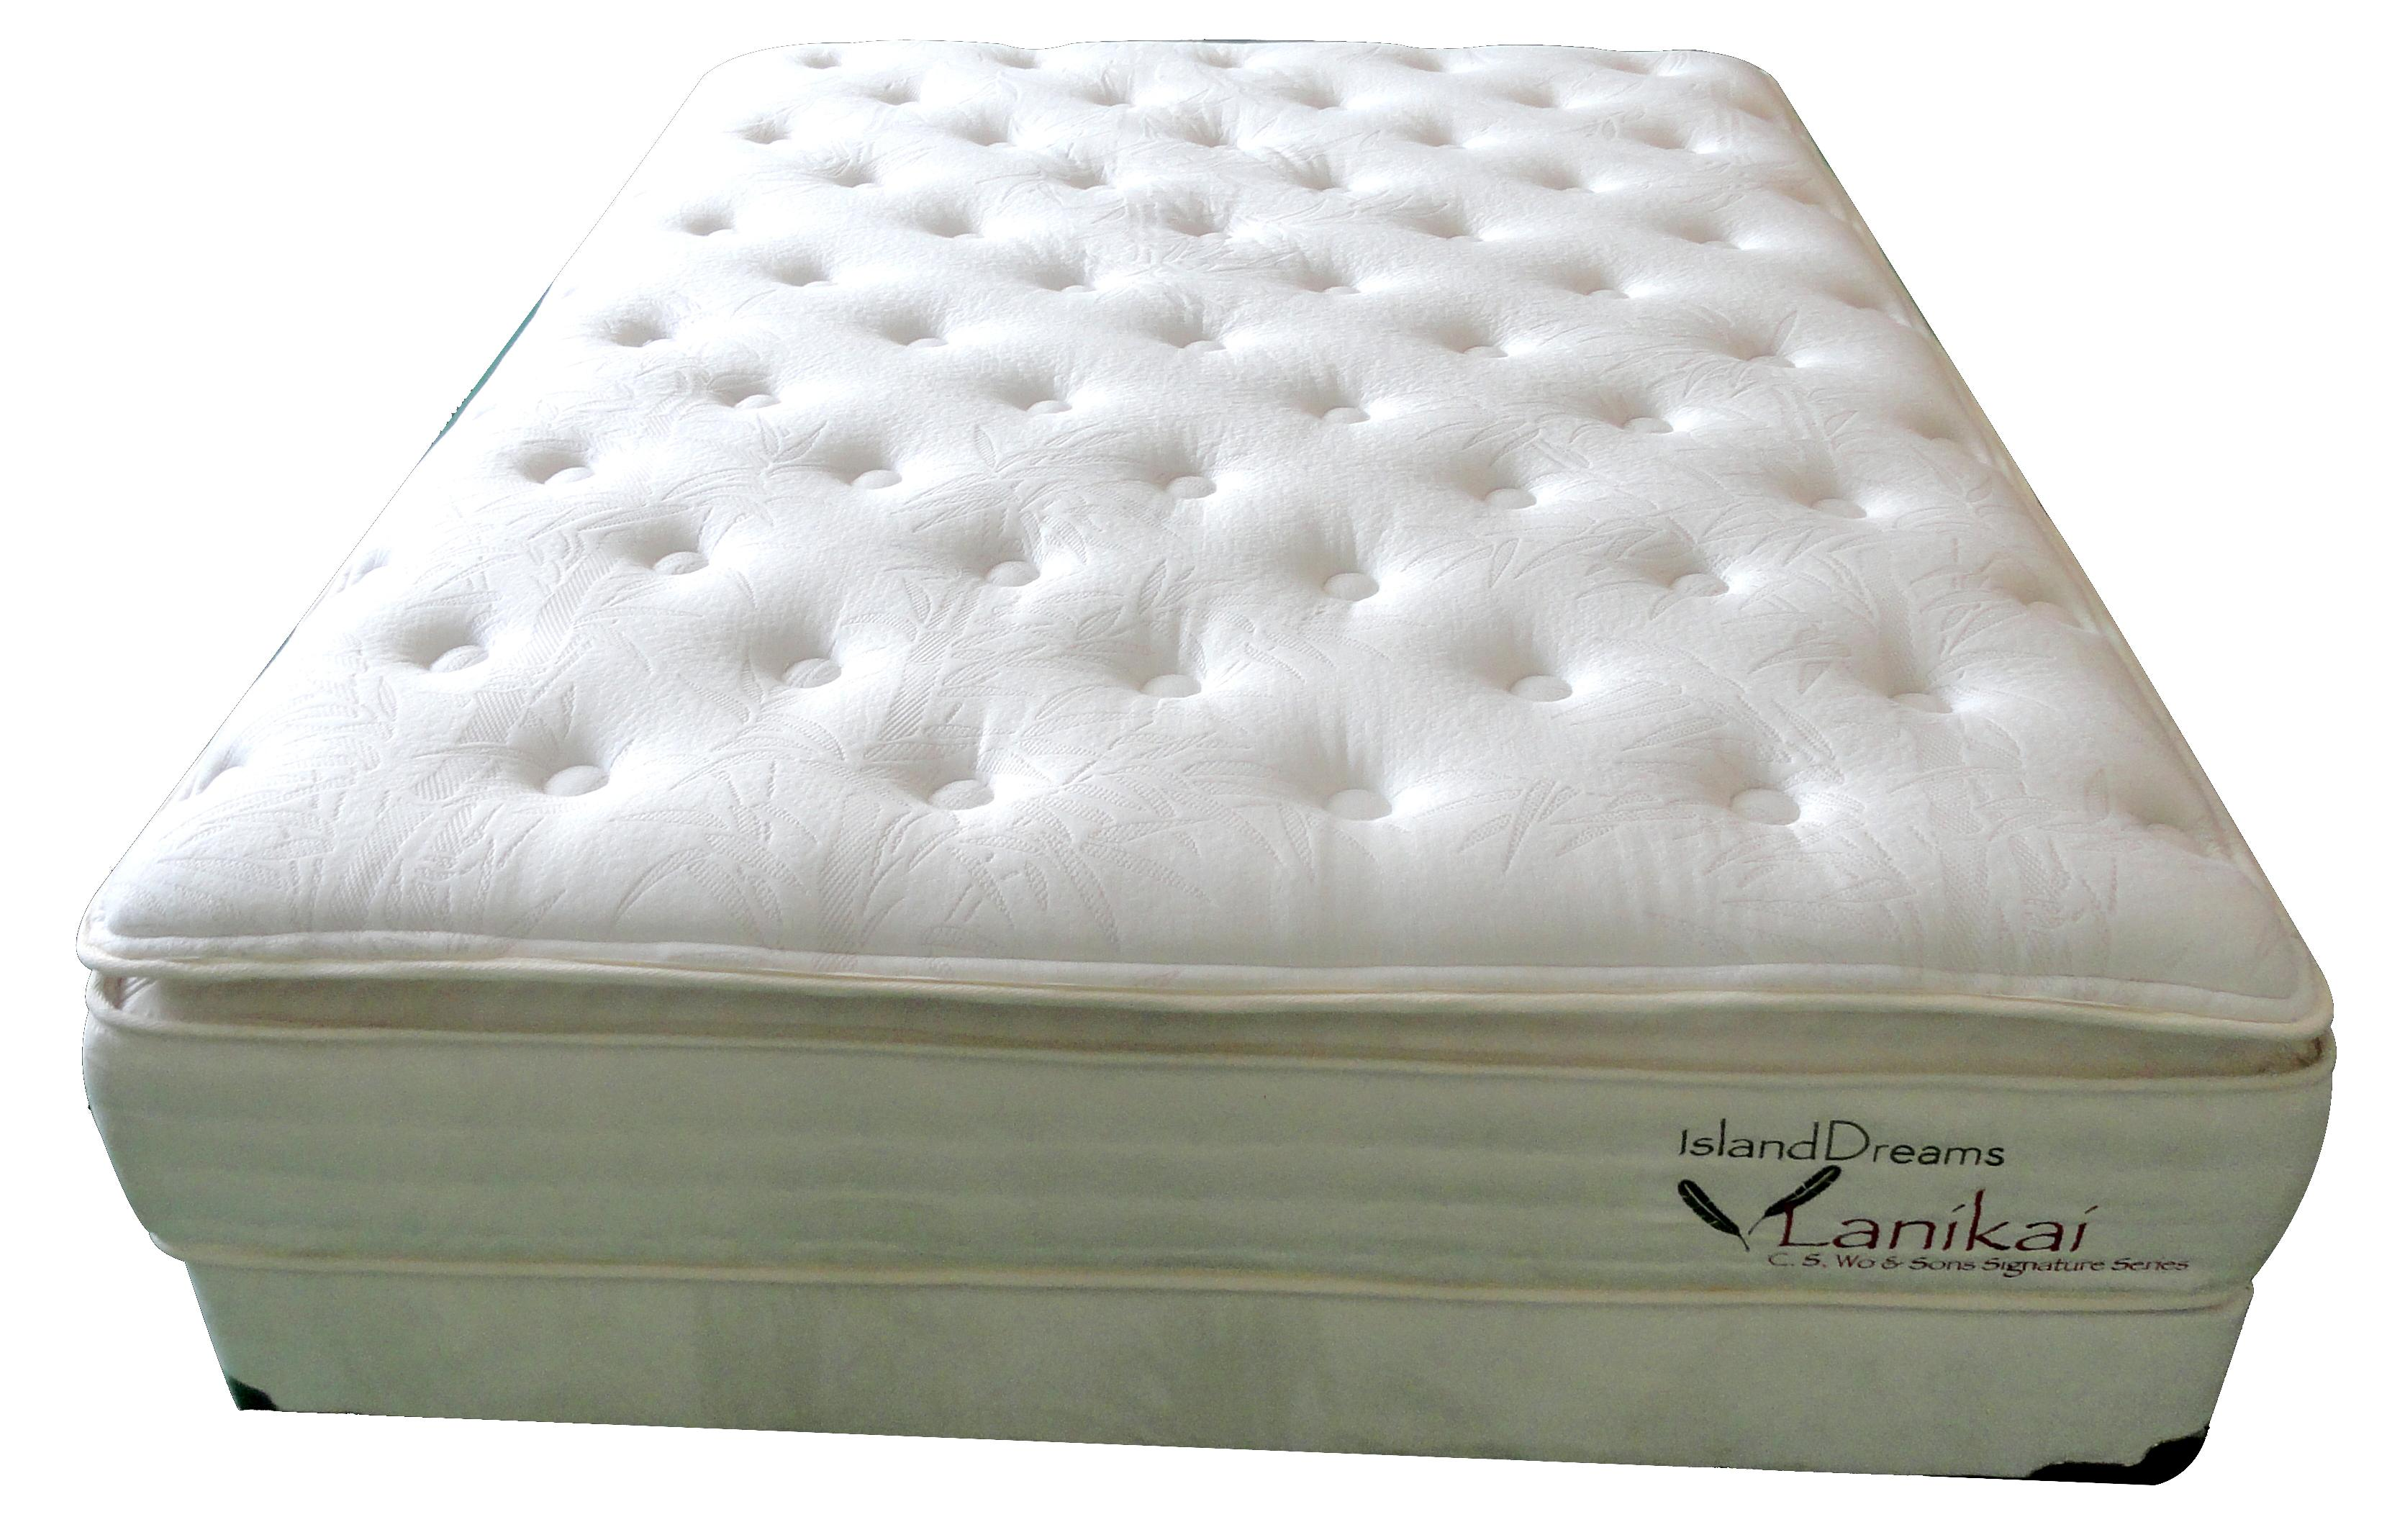 Dreams Mattress Guarantee Island Dreams Lanikai Full Plush Mattress Slumberworld Mattress